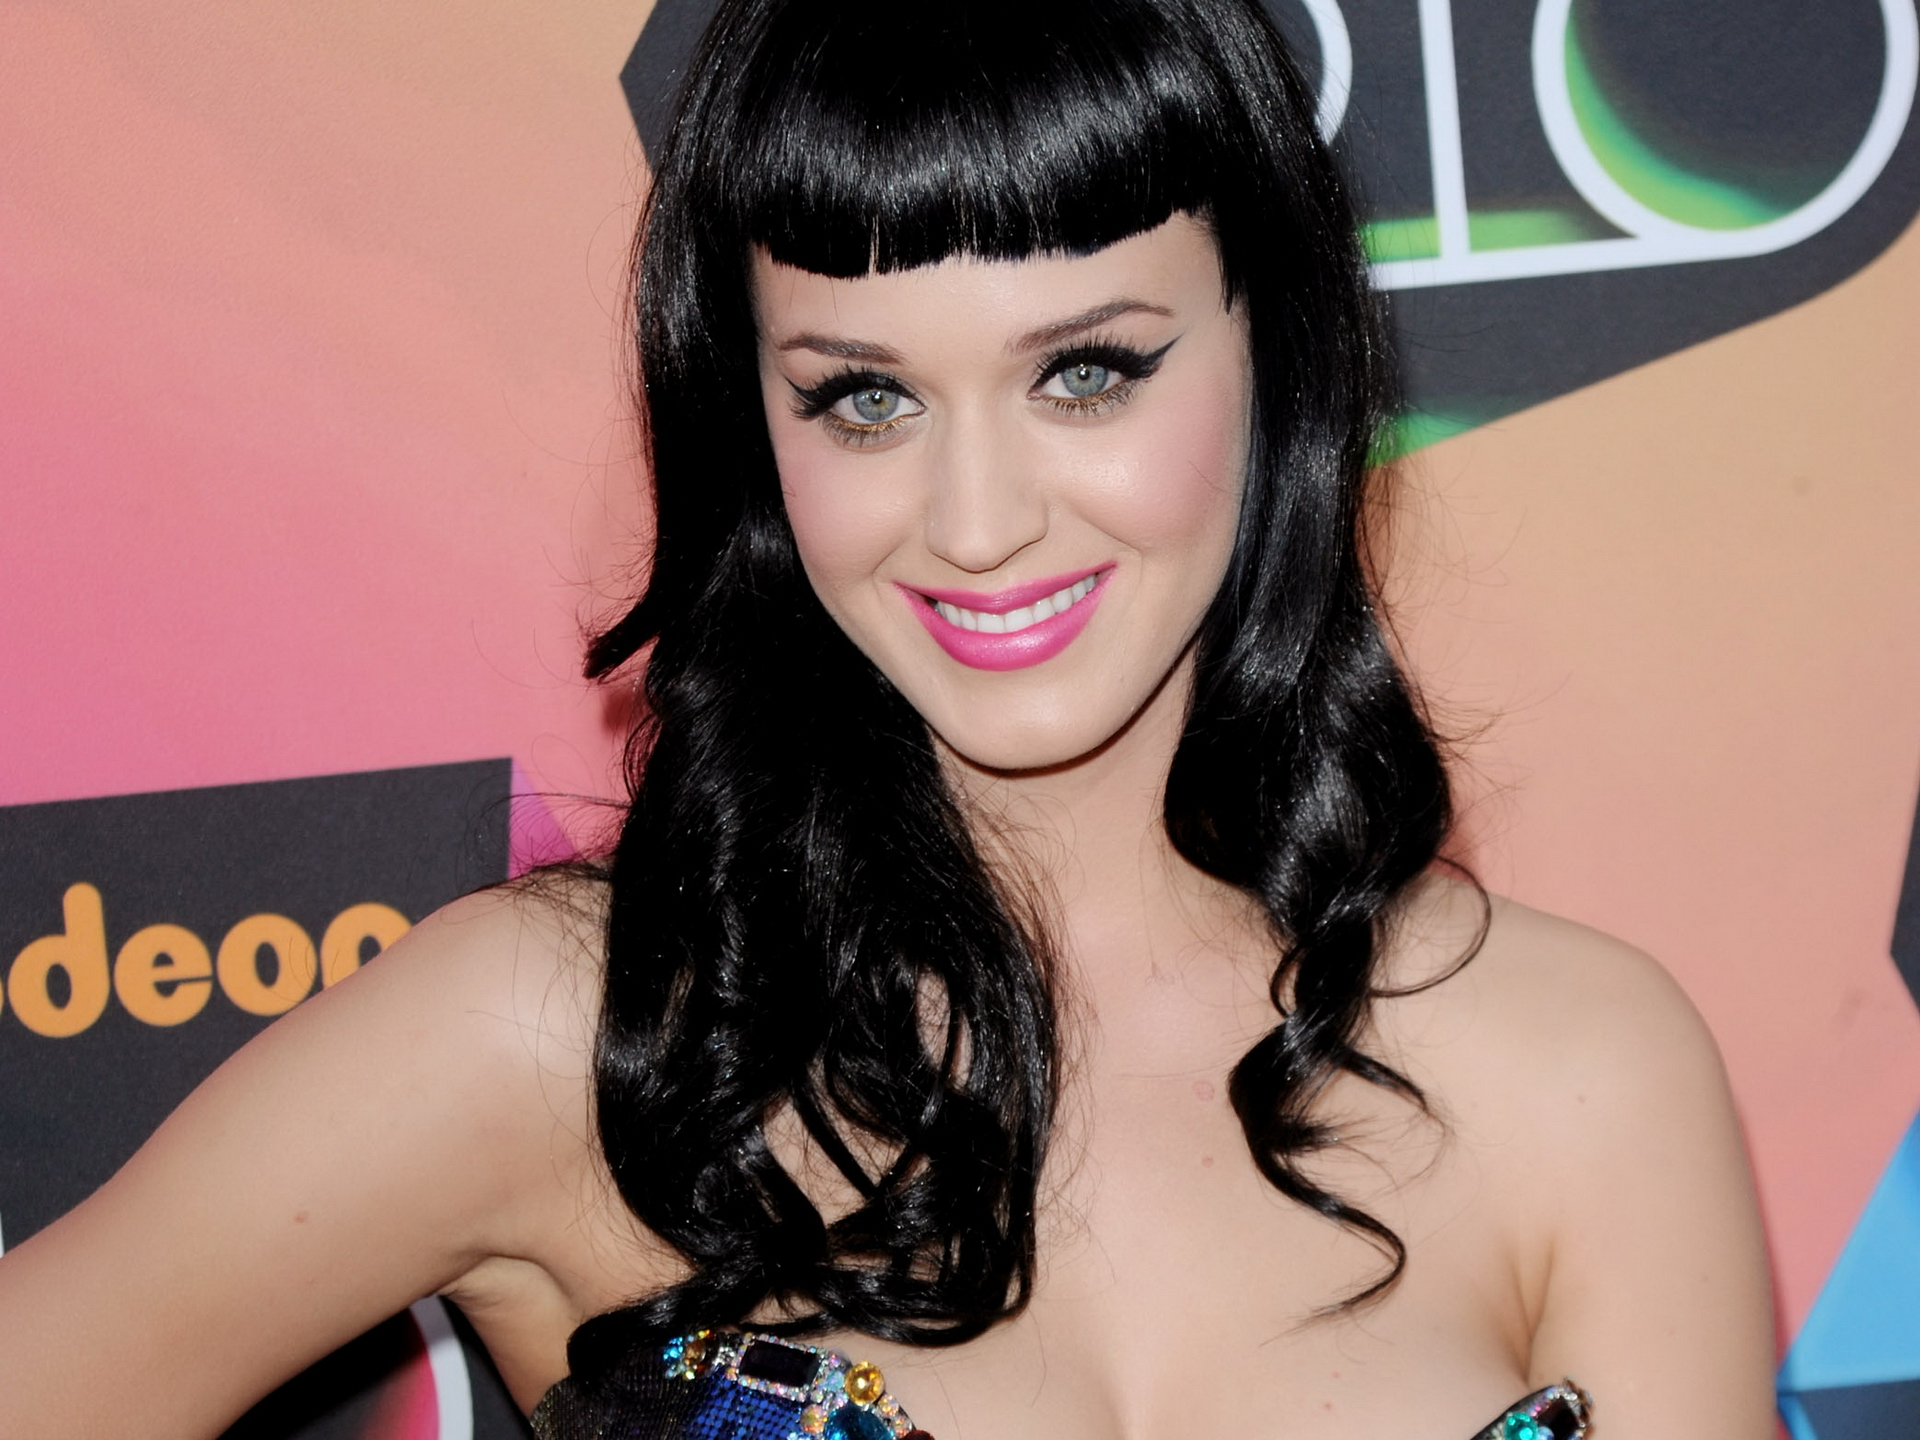 Katy Perry ‹ Joe Oliveri Hair Salon's Celebrity Style Gallery Wallpaper